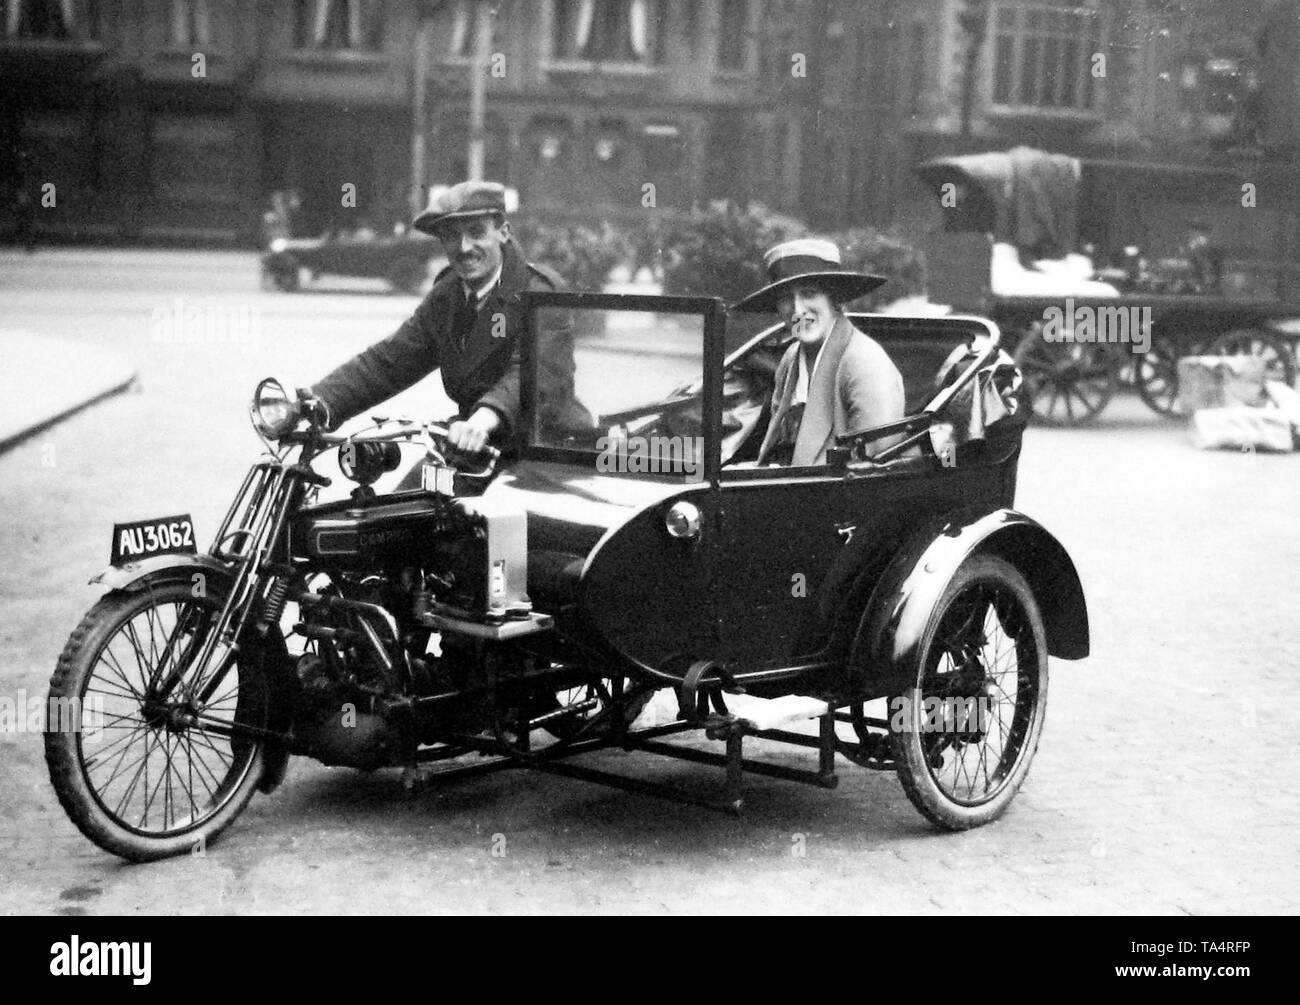 Campion motorbike taxi in Trinity Square Nottingham in 1927 - Stock Image